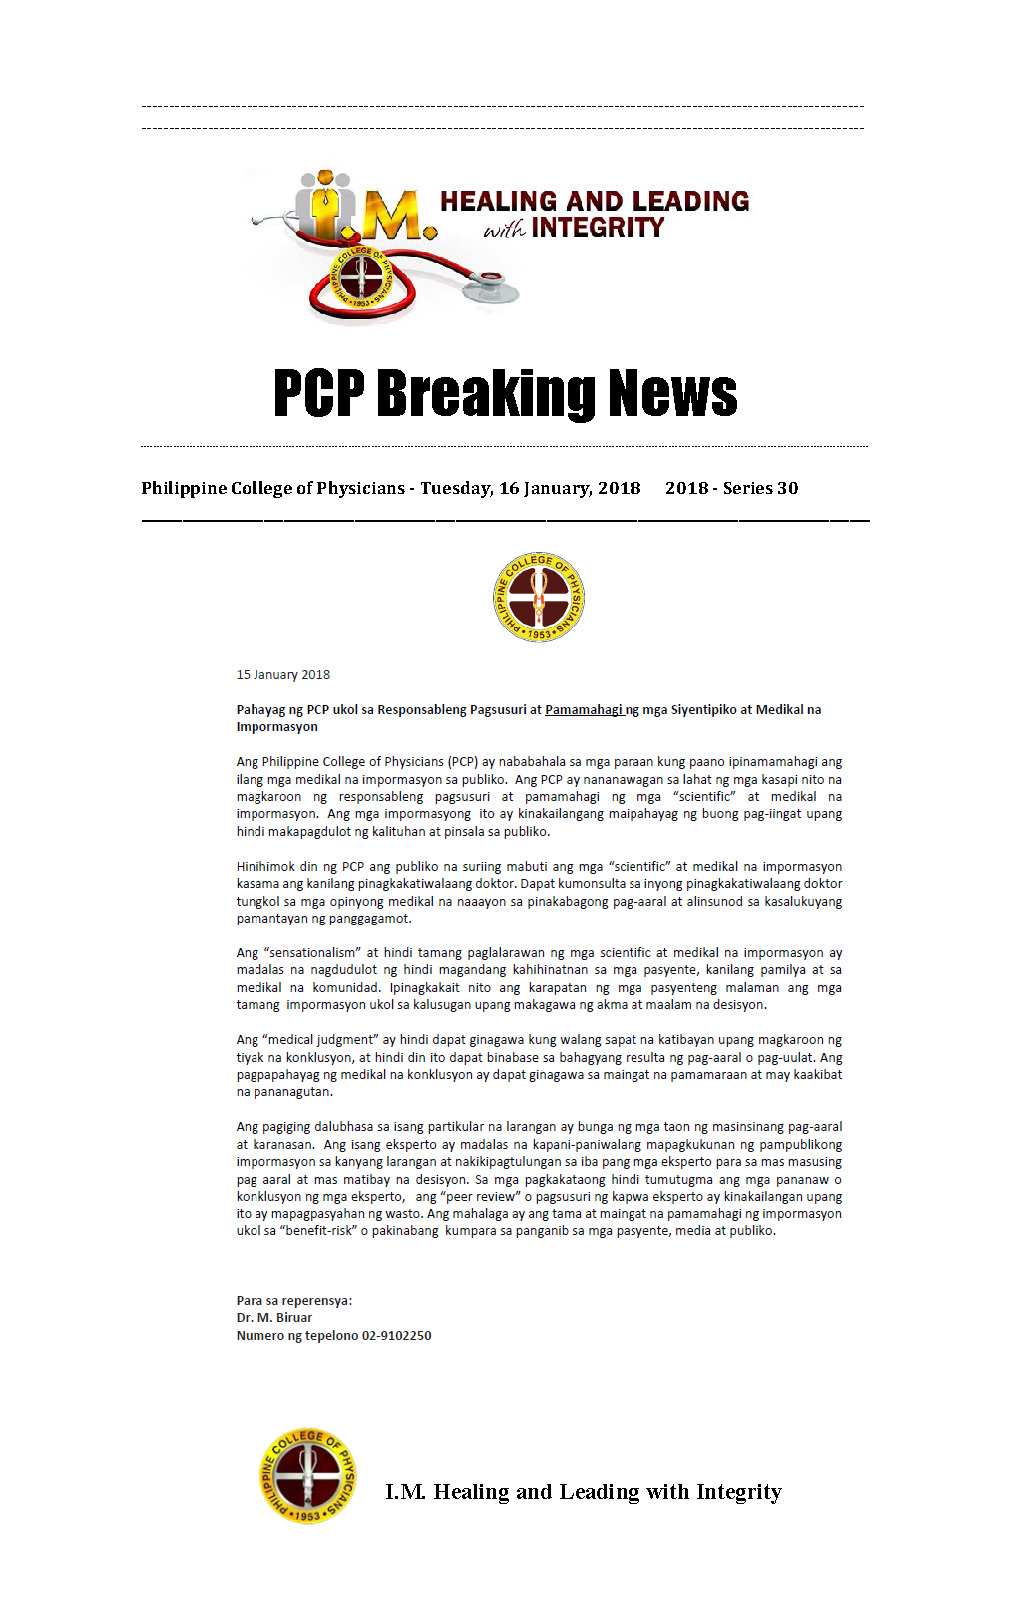 PCP Breaking News PCP Statement tagalog